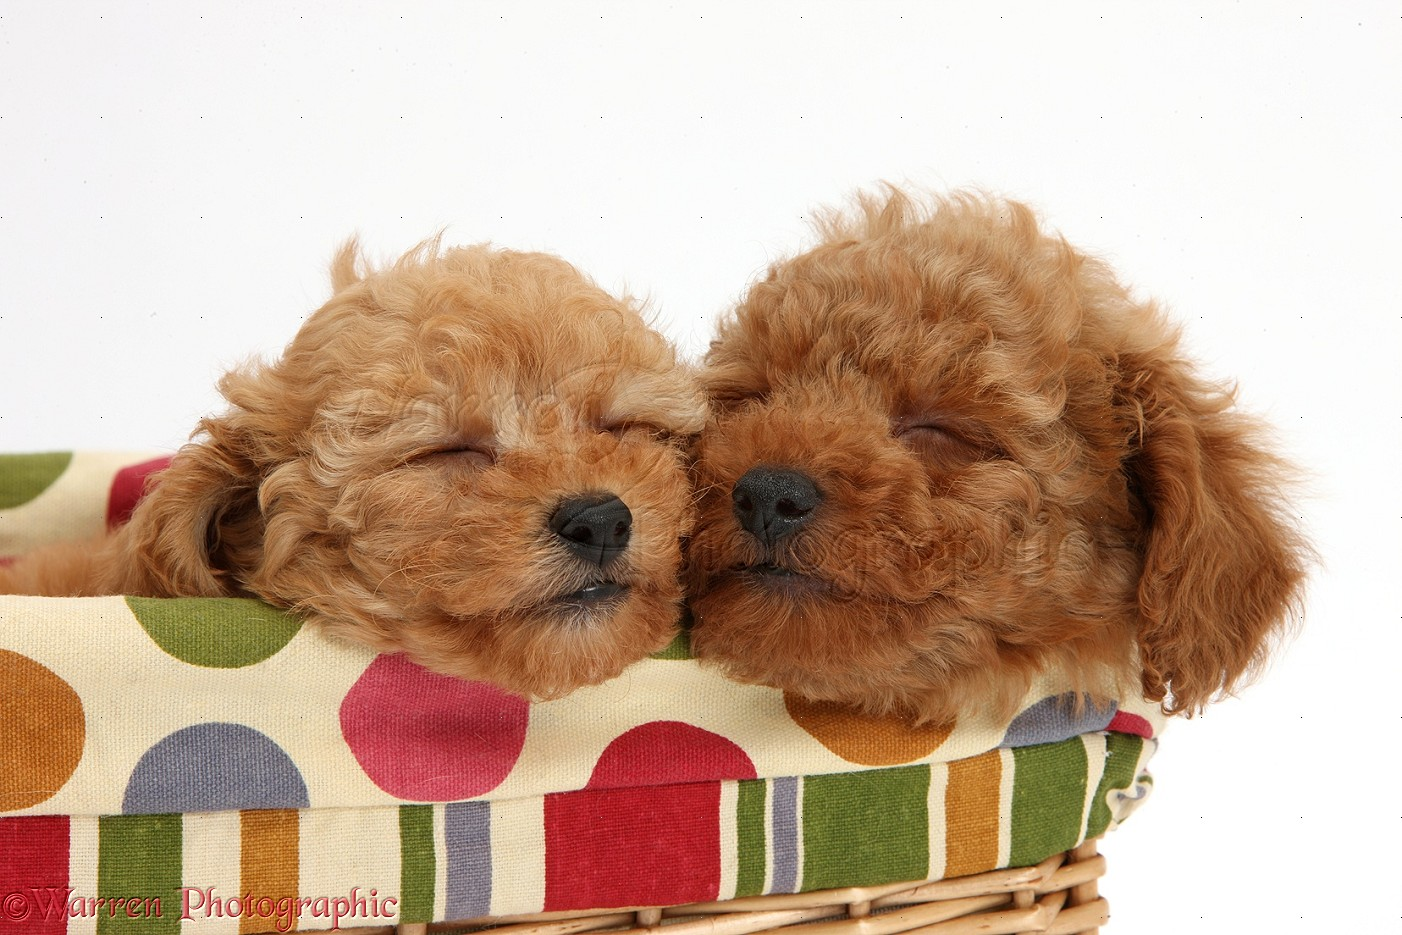 dogs: two cute sleepy red toy poodle puppies photo wp39636